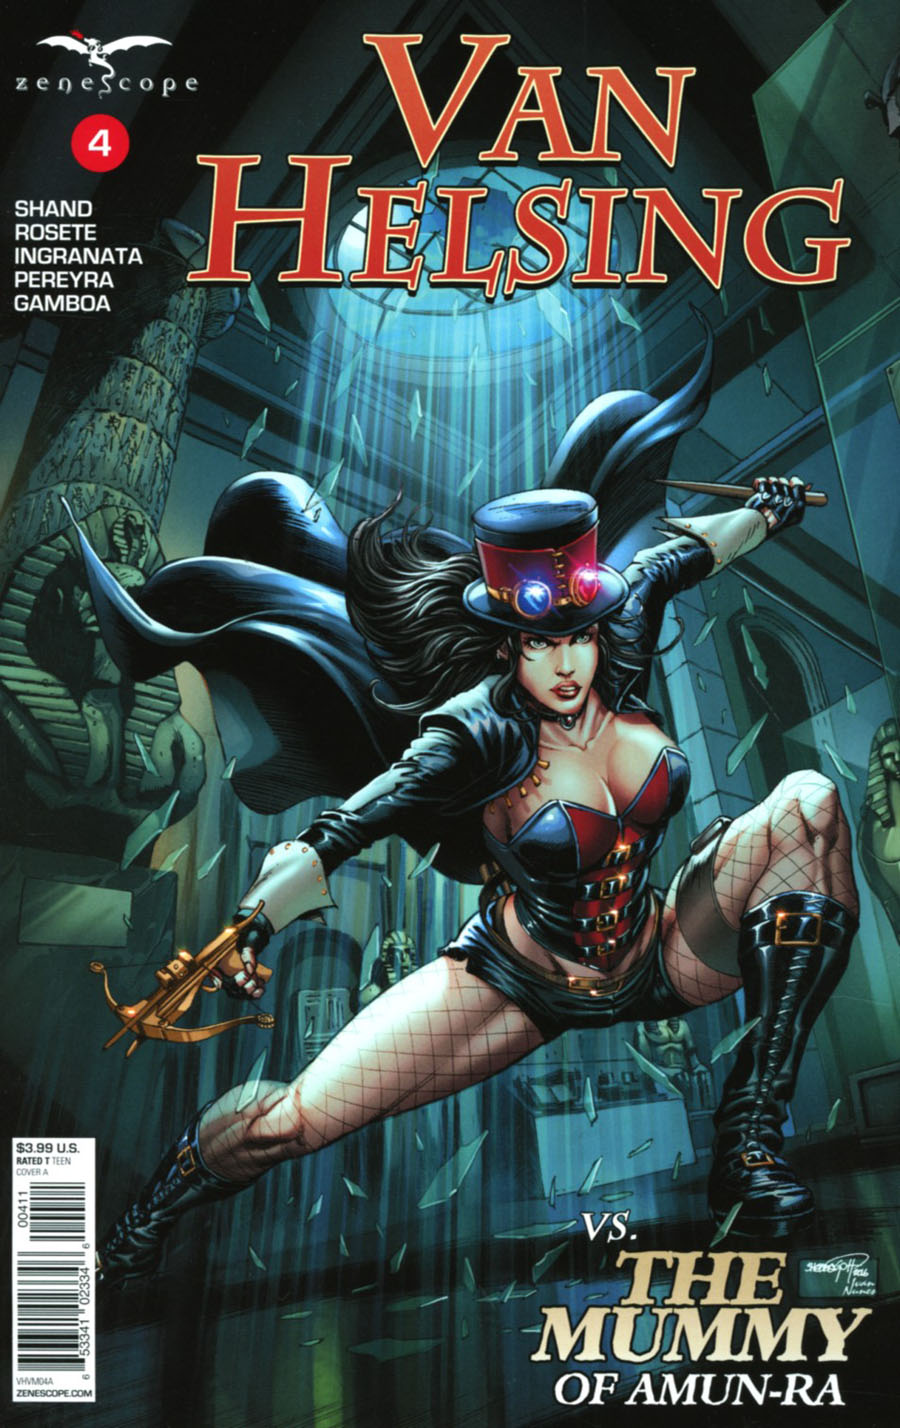 Grimm Fairy Tales Presents Van Helsing vs The Mummy Of Amun-Ra #4 Cover A Sheldon Goh